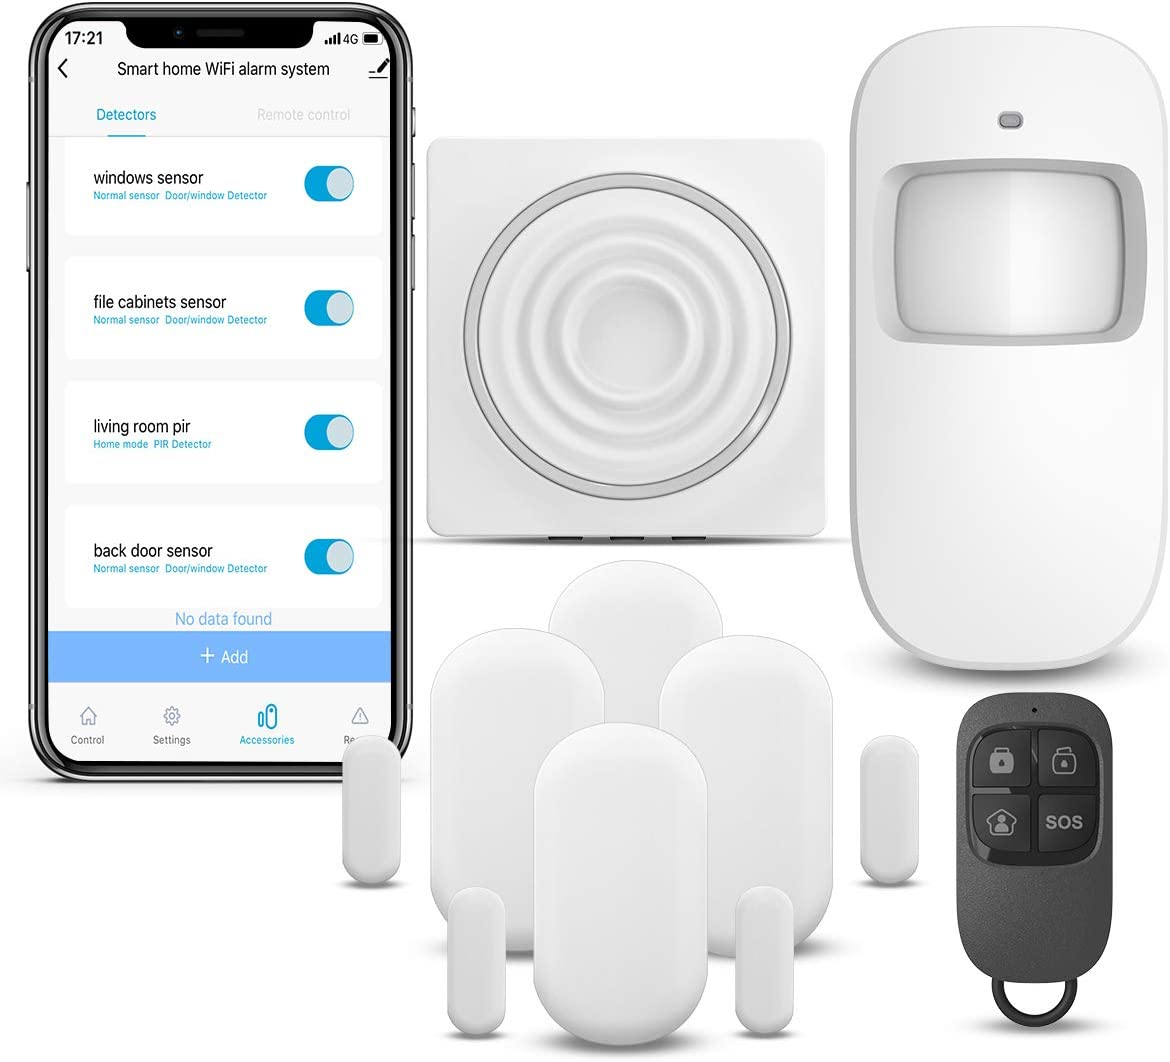 WiFi Security System WiFi Alarm System Kit Compatible with Alexa,APP Control and Message Alert Function,1 PIR Motion Sensor,1 Remote Control,4 Door Open Alarm and 1 Wi-Fi Gateway 2.4G WiFi only